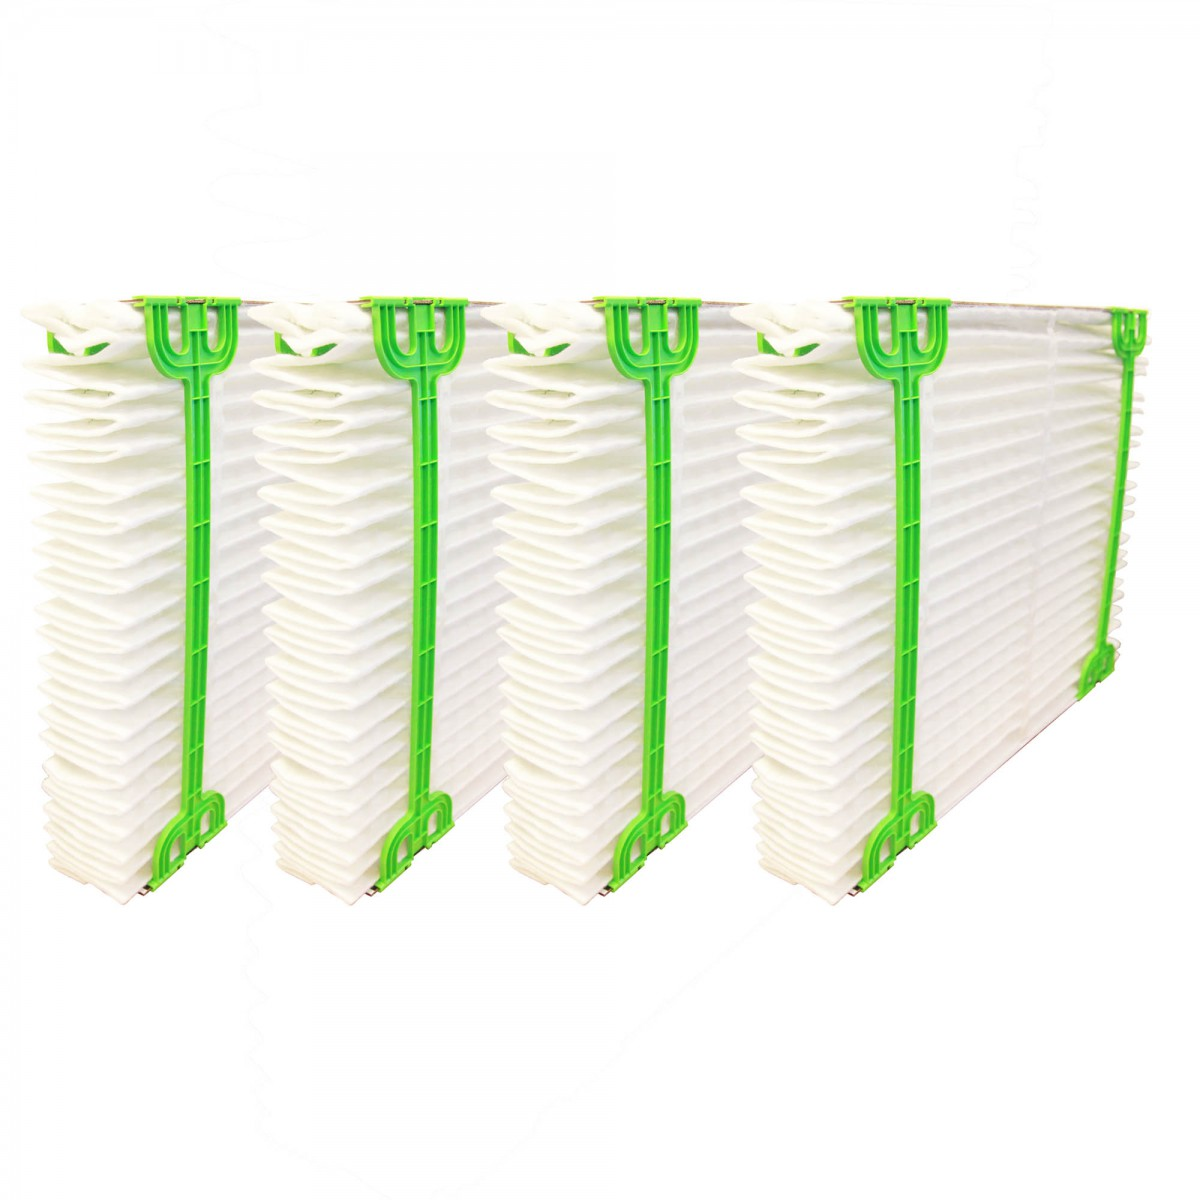 Aprilaire Air Purifier Replacement Filter 213 By Tier1 4